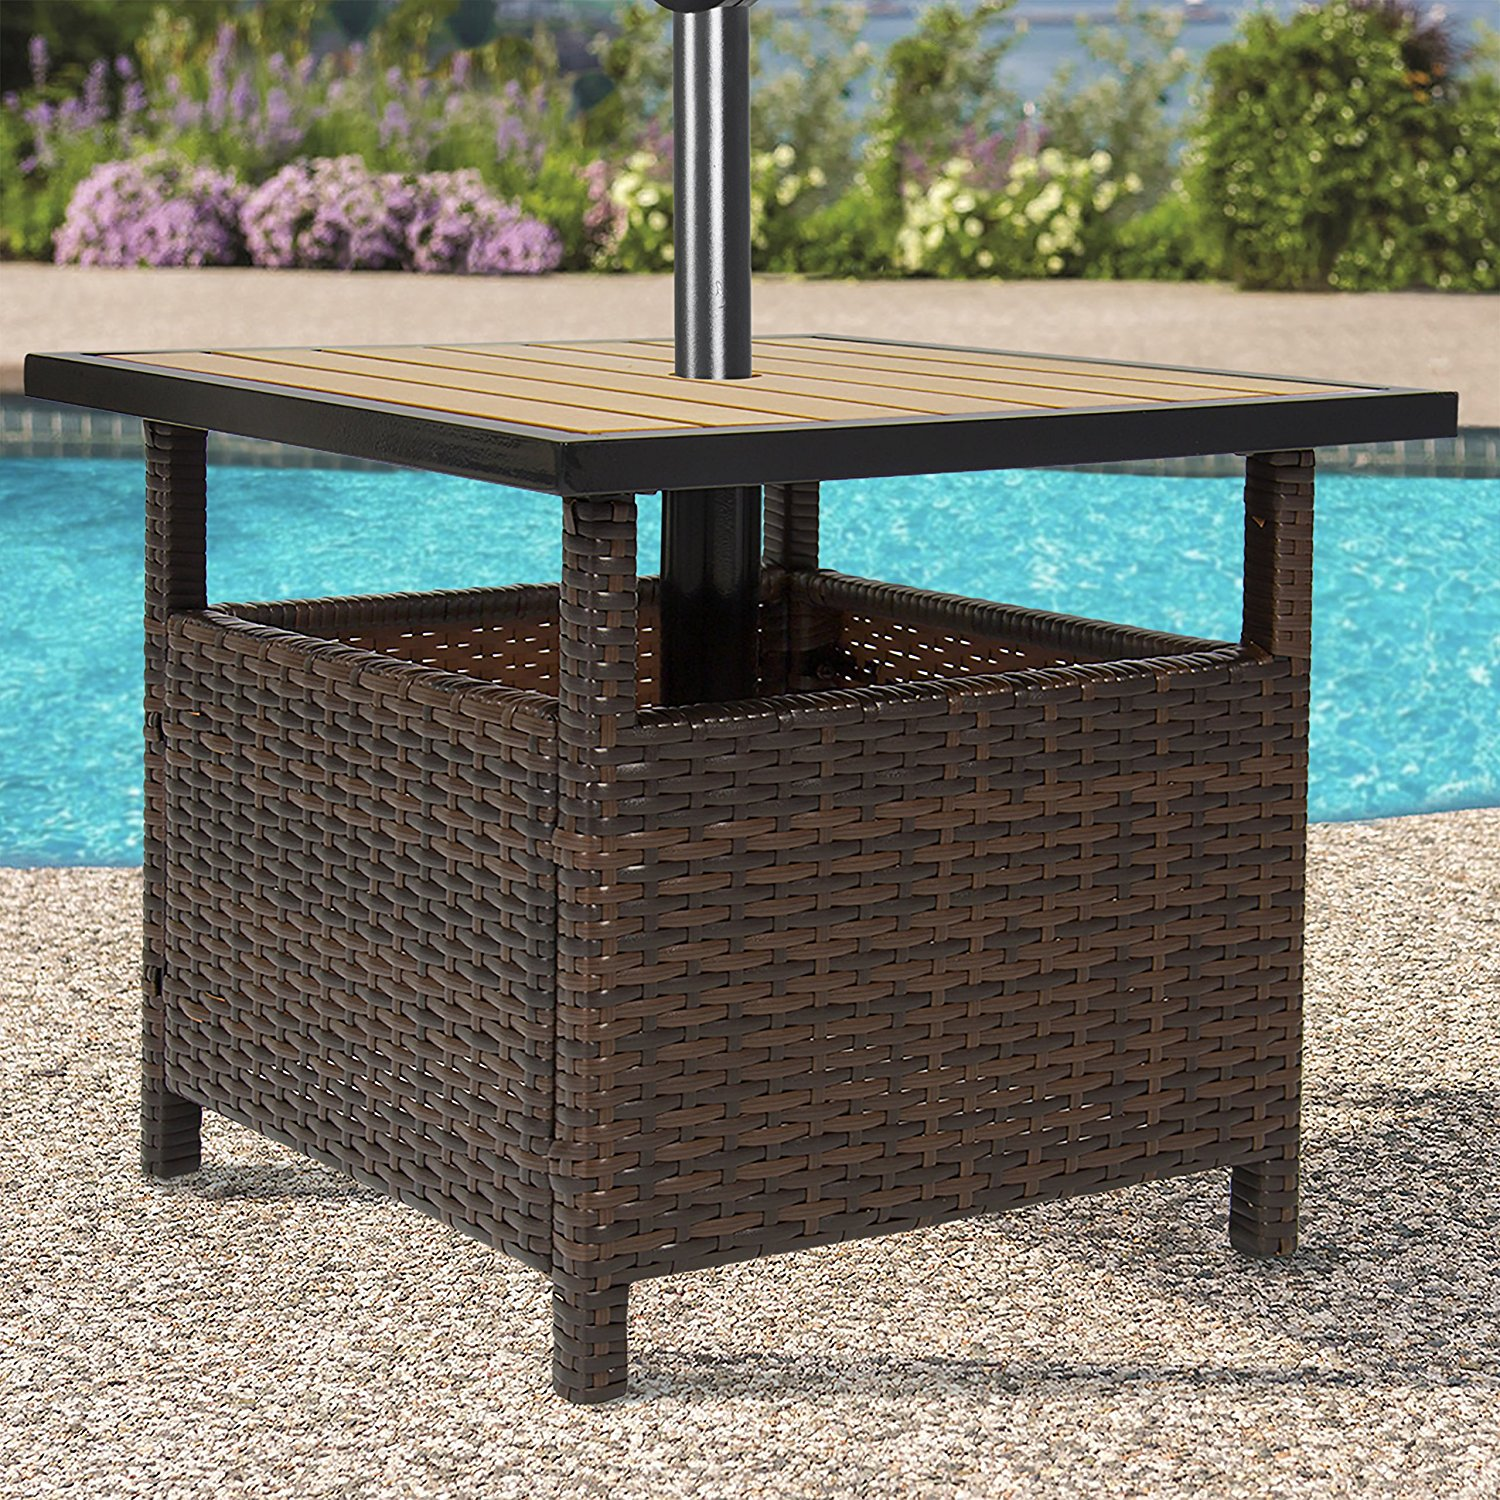 furniture kmart outdoor table small patio with umbrella target plastic dining hole wrought iron bistro tables umbrellas side hotel lamps usb ports battery powered floor lights red